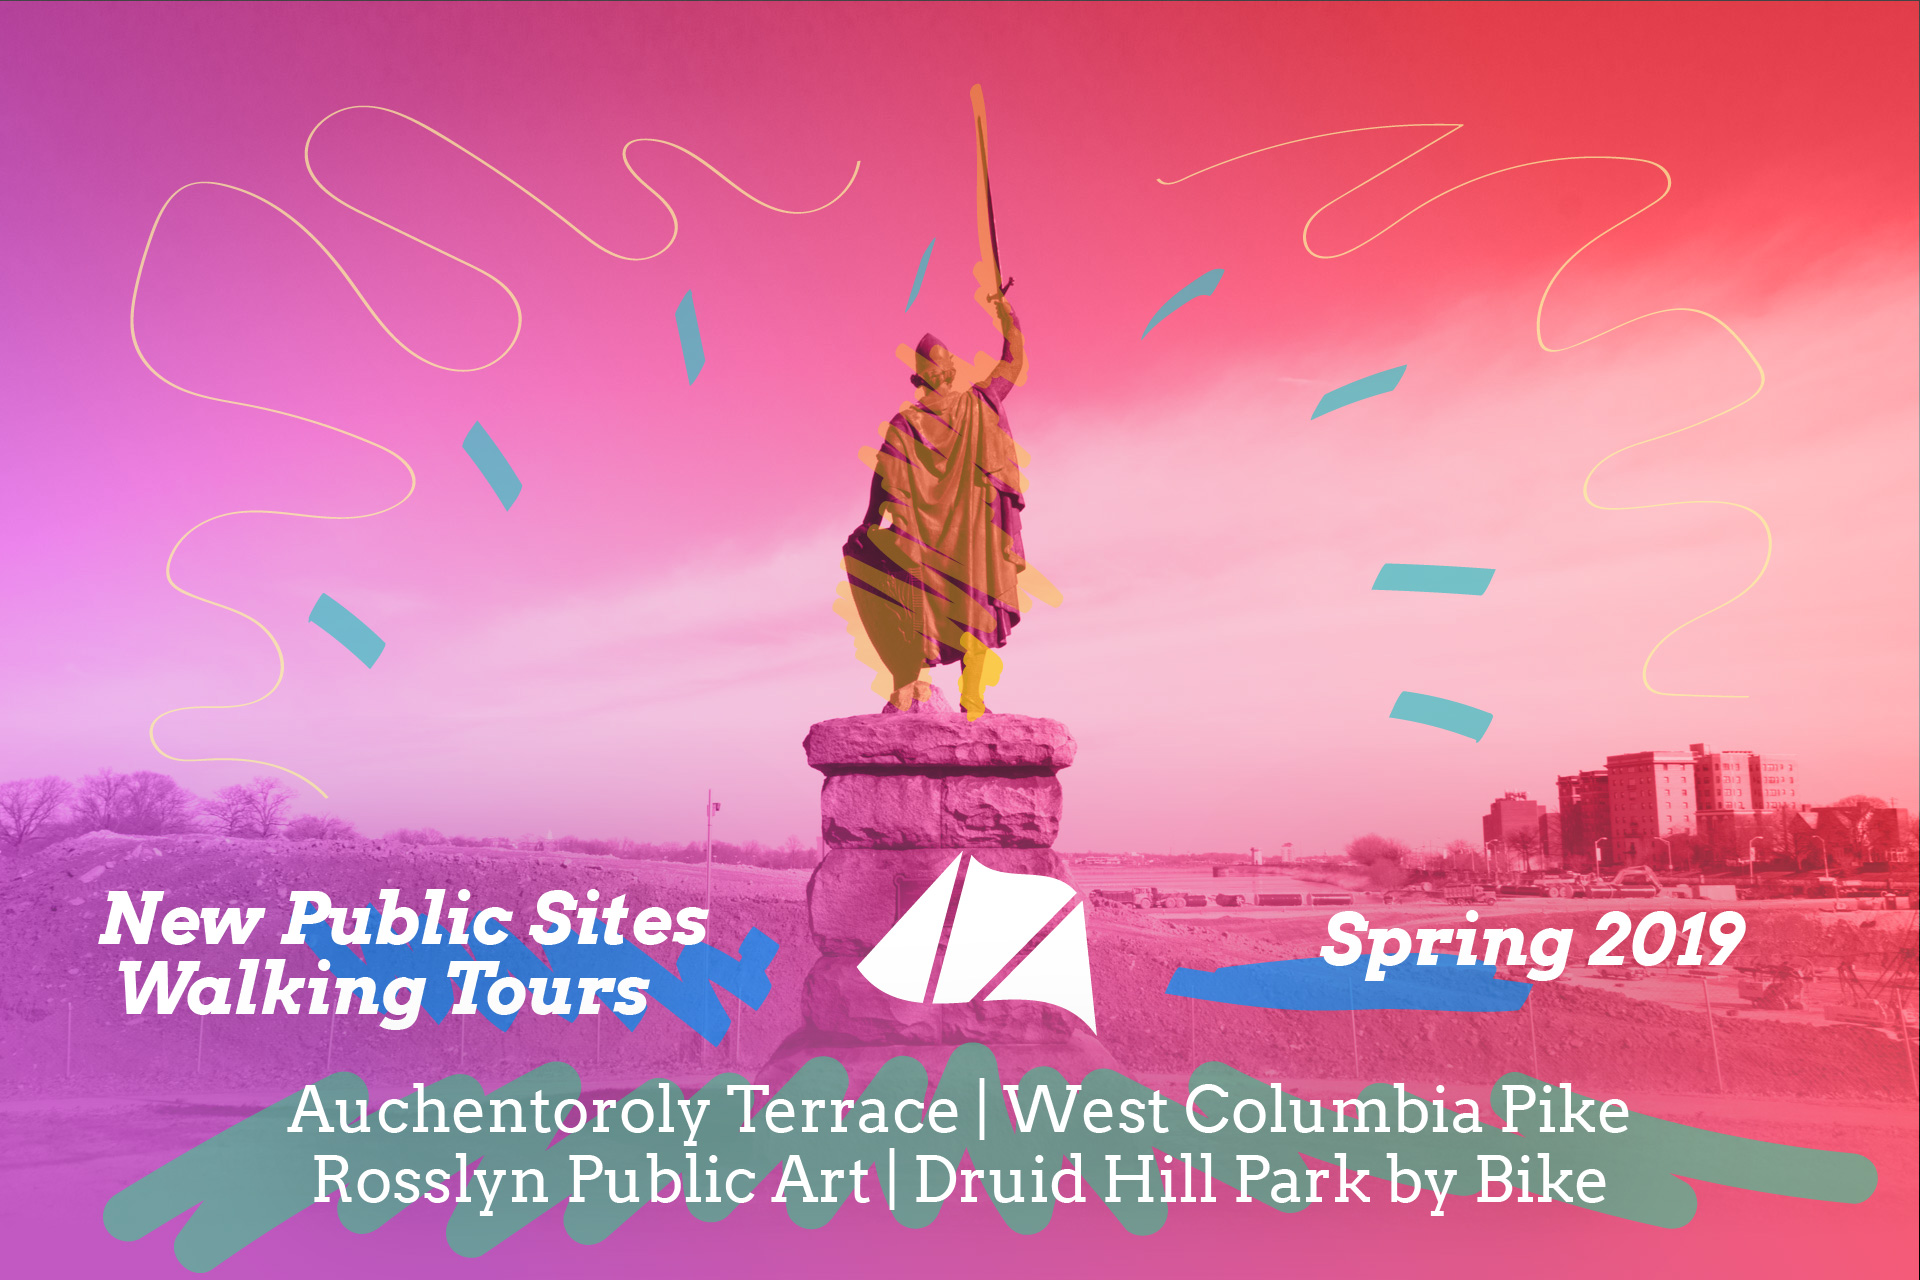 New Public Sites Spring 2019 tours